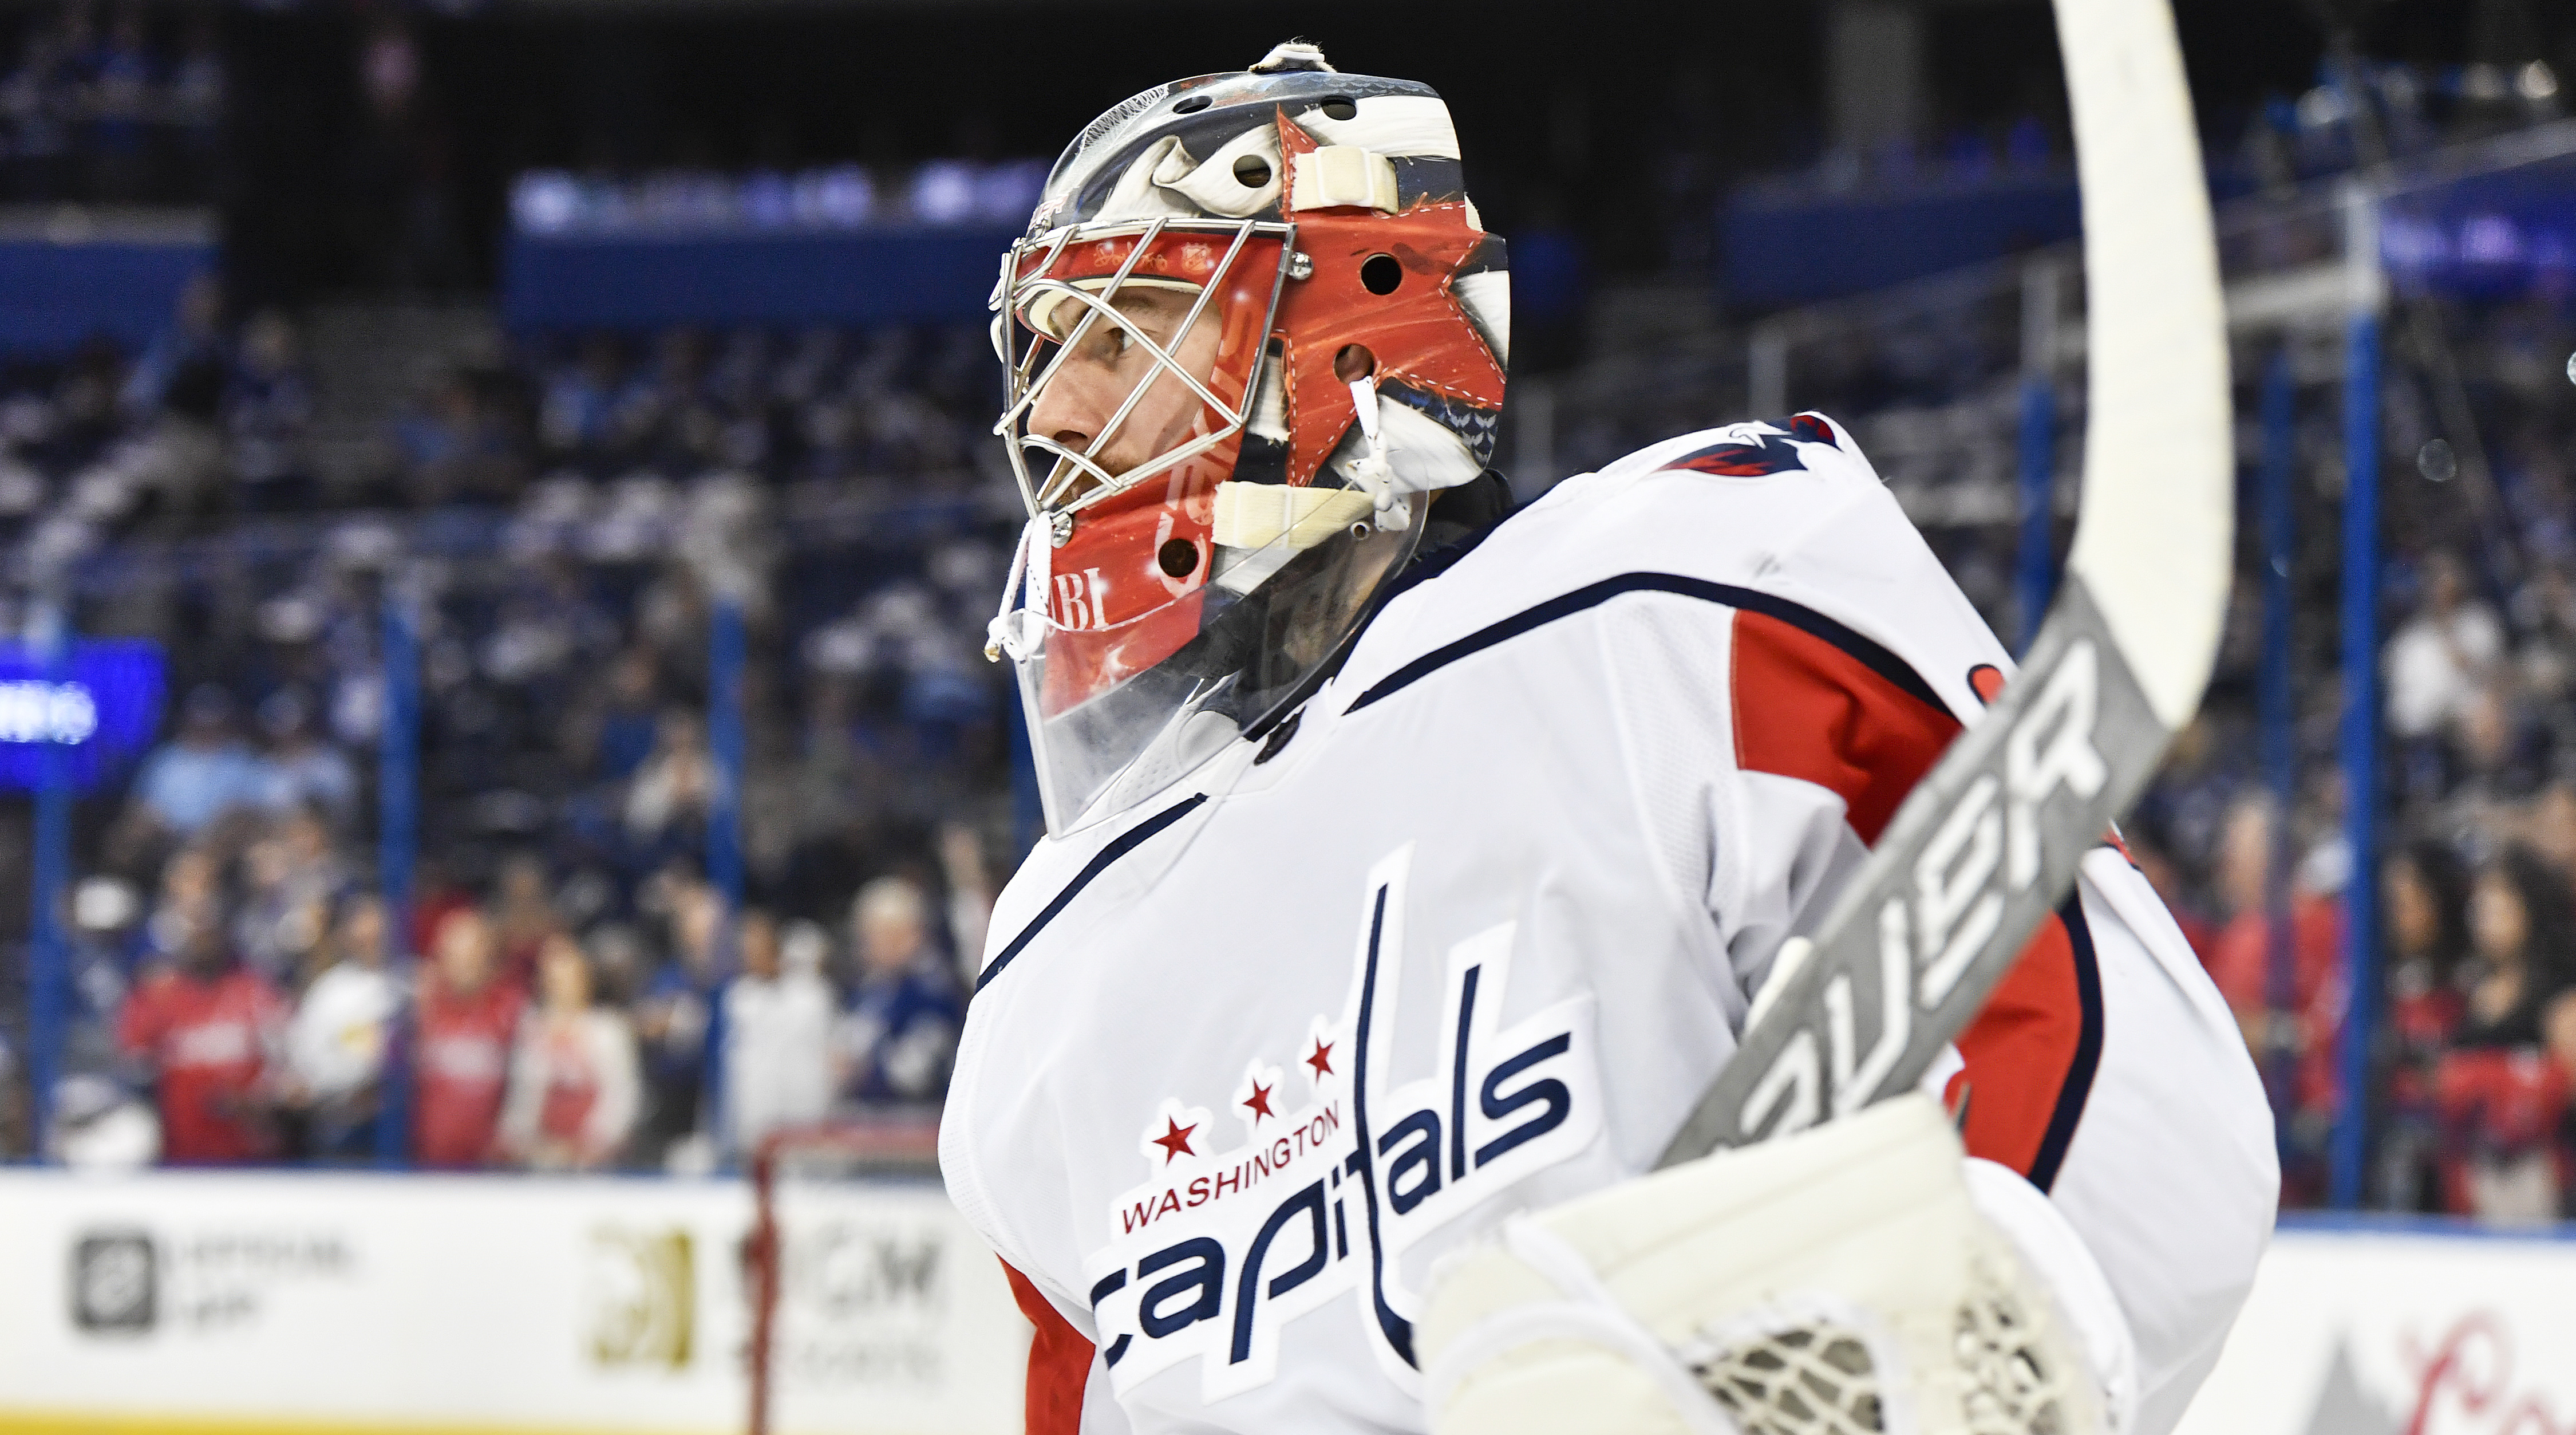 NHL: MAY 23 Stanley Cup Playoffs Eastern Conference Finals Game 7 - Capitals at Lightning